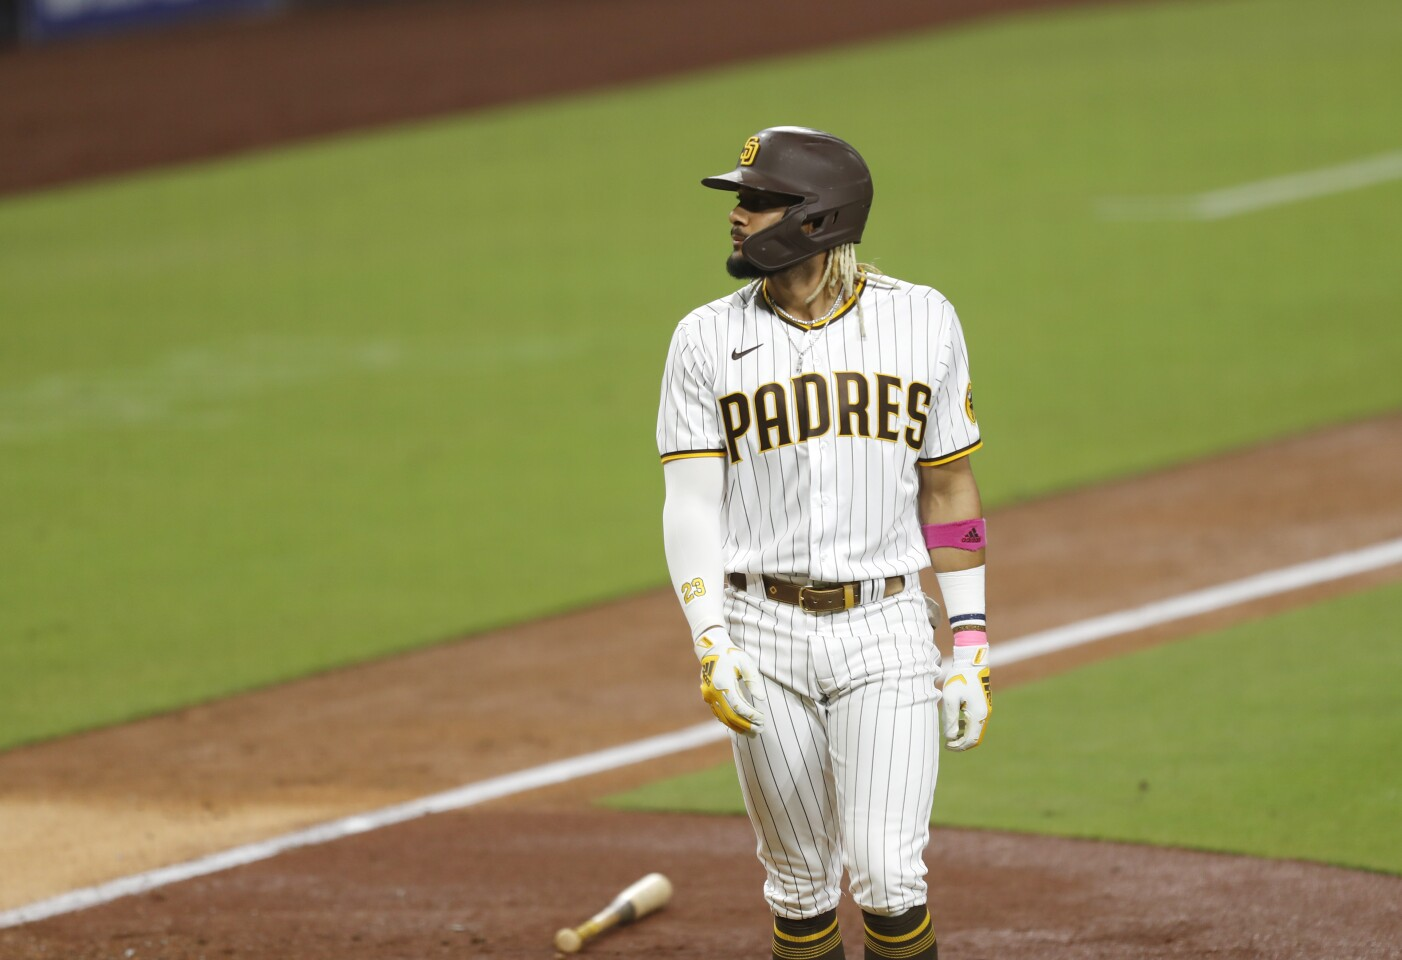 SAN DIEGO, CA - SEPTEMBER 15: Fernando Tatis Jr. of the San Diego Padres looks on after flying out in the 6th inning against the Los Angeles Dodgers at Petco Park on Monday, Sept.15, 2020 in San Diego, CA. (K.C. Alfred / The San Diego Union-Tribune)